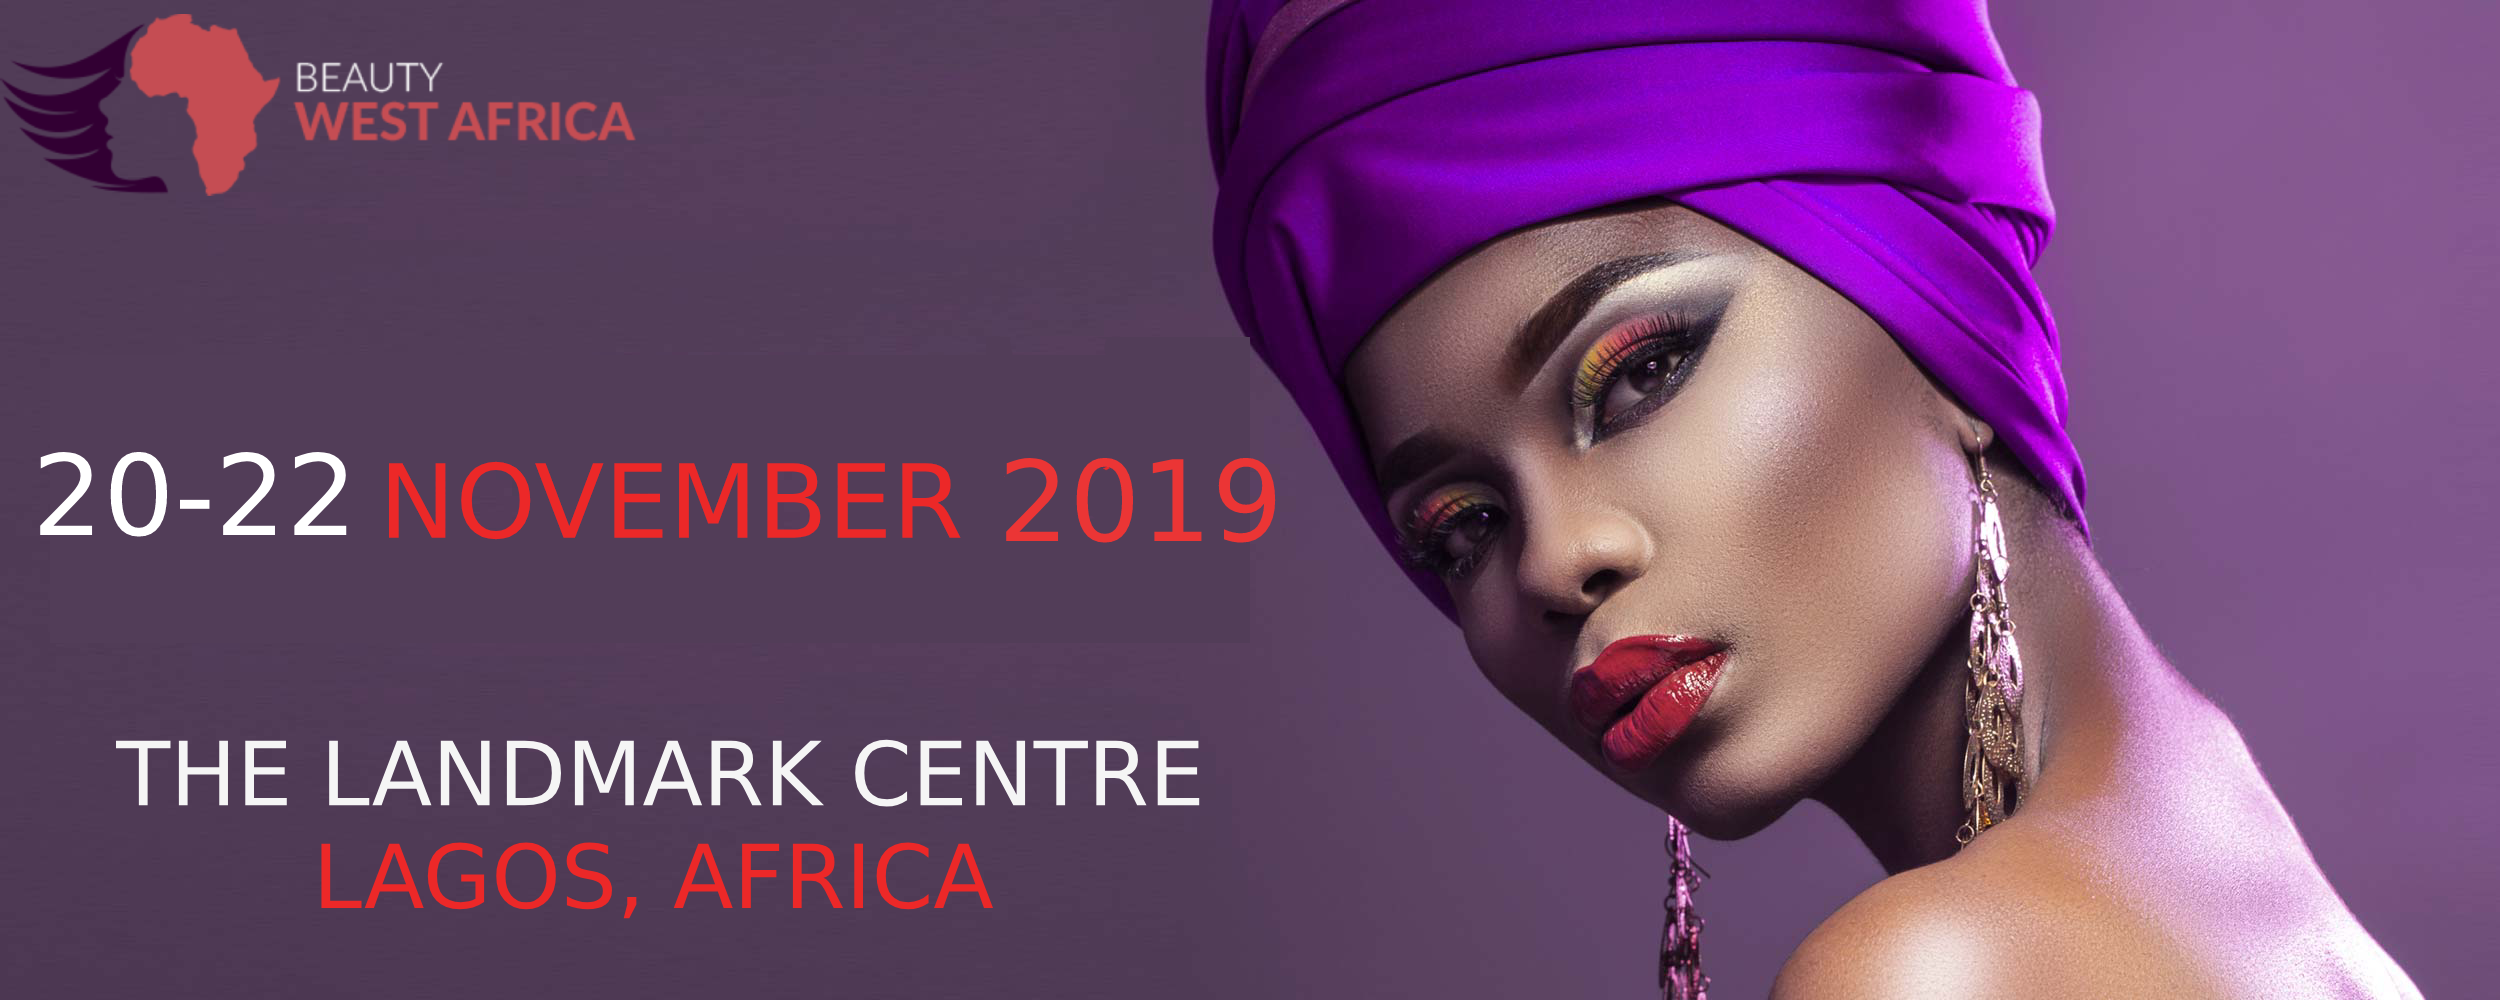 Beauty West Africa Event will be held on 20-22 November 2019 in Lagos West Africal.